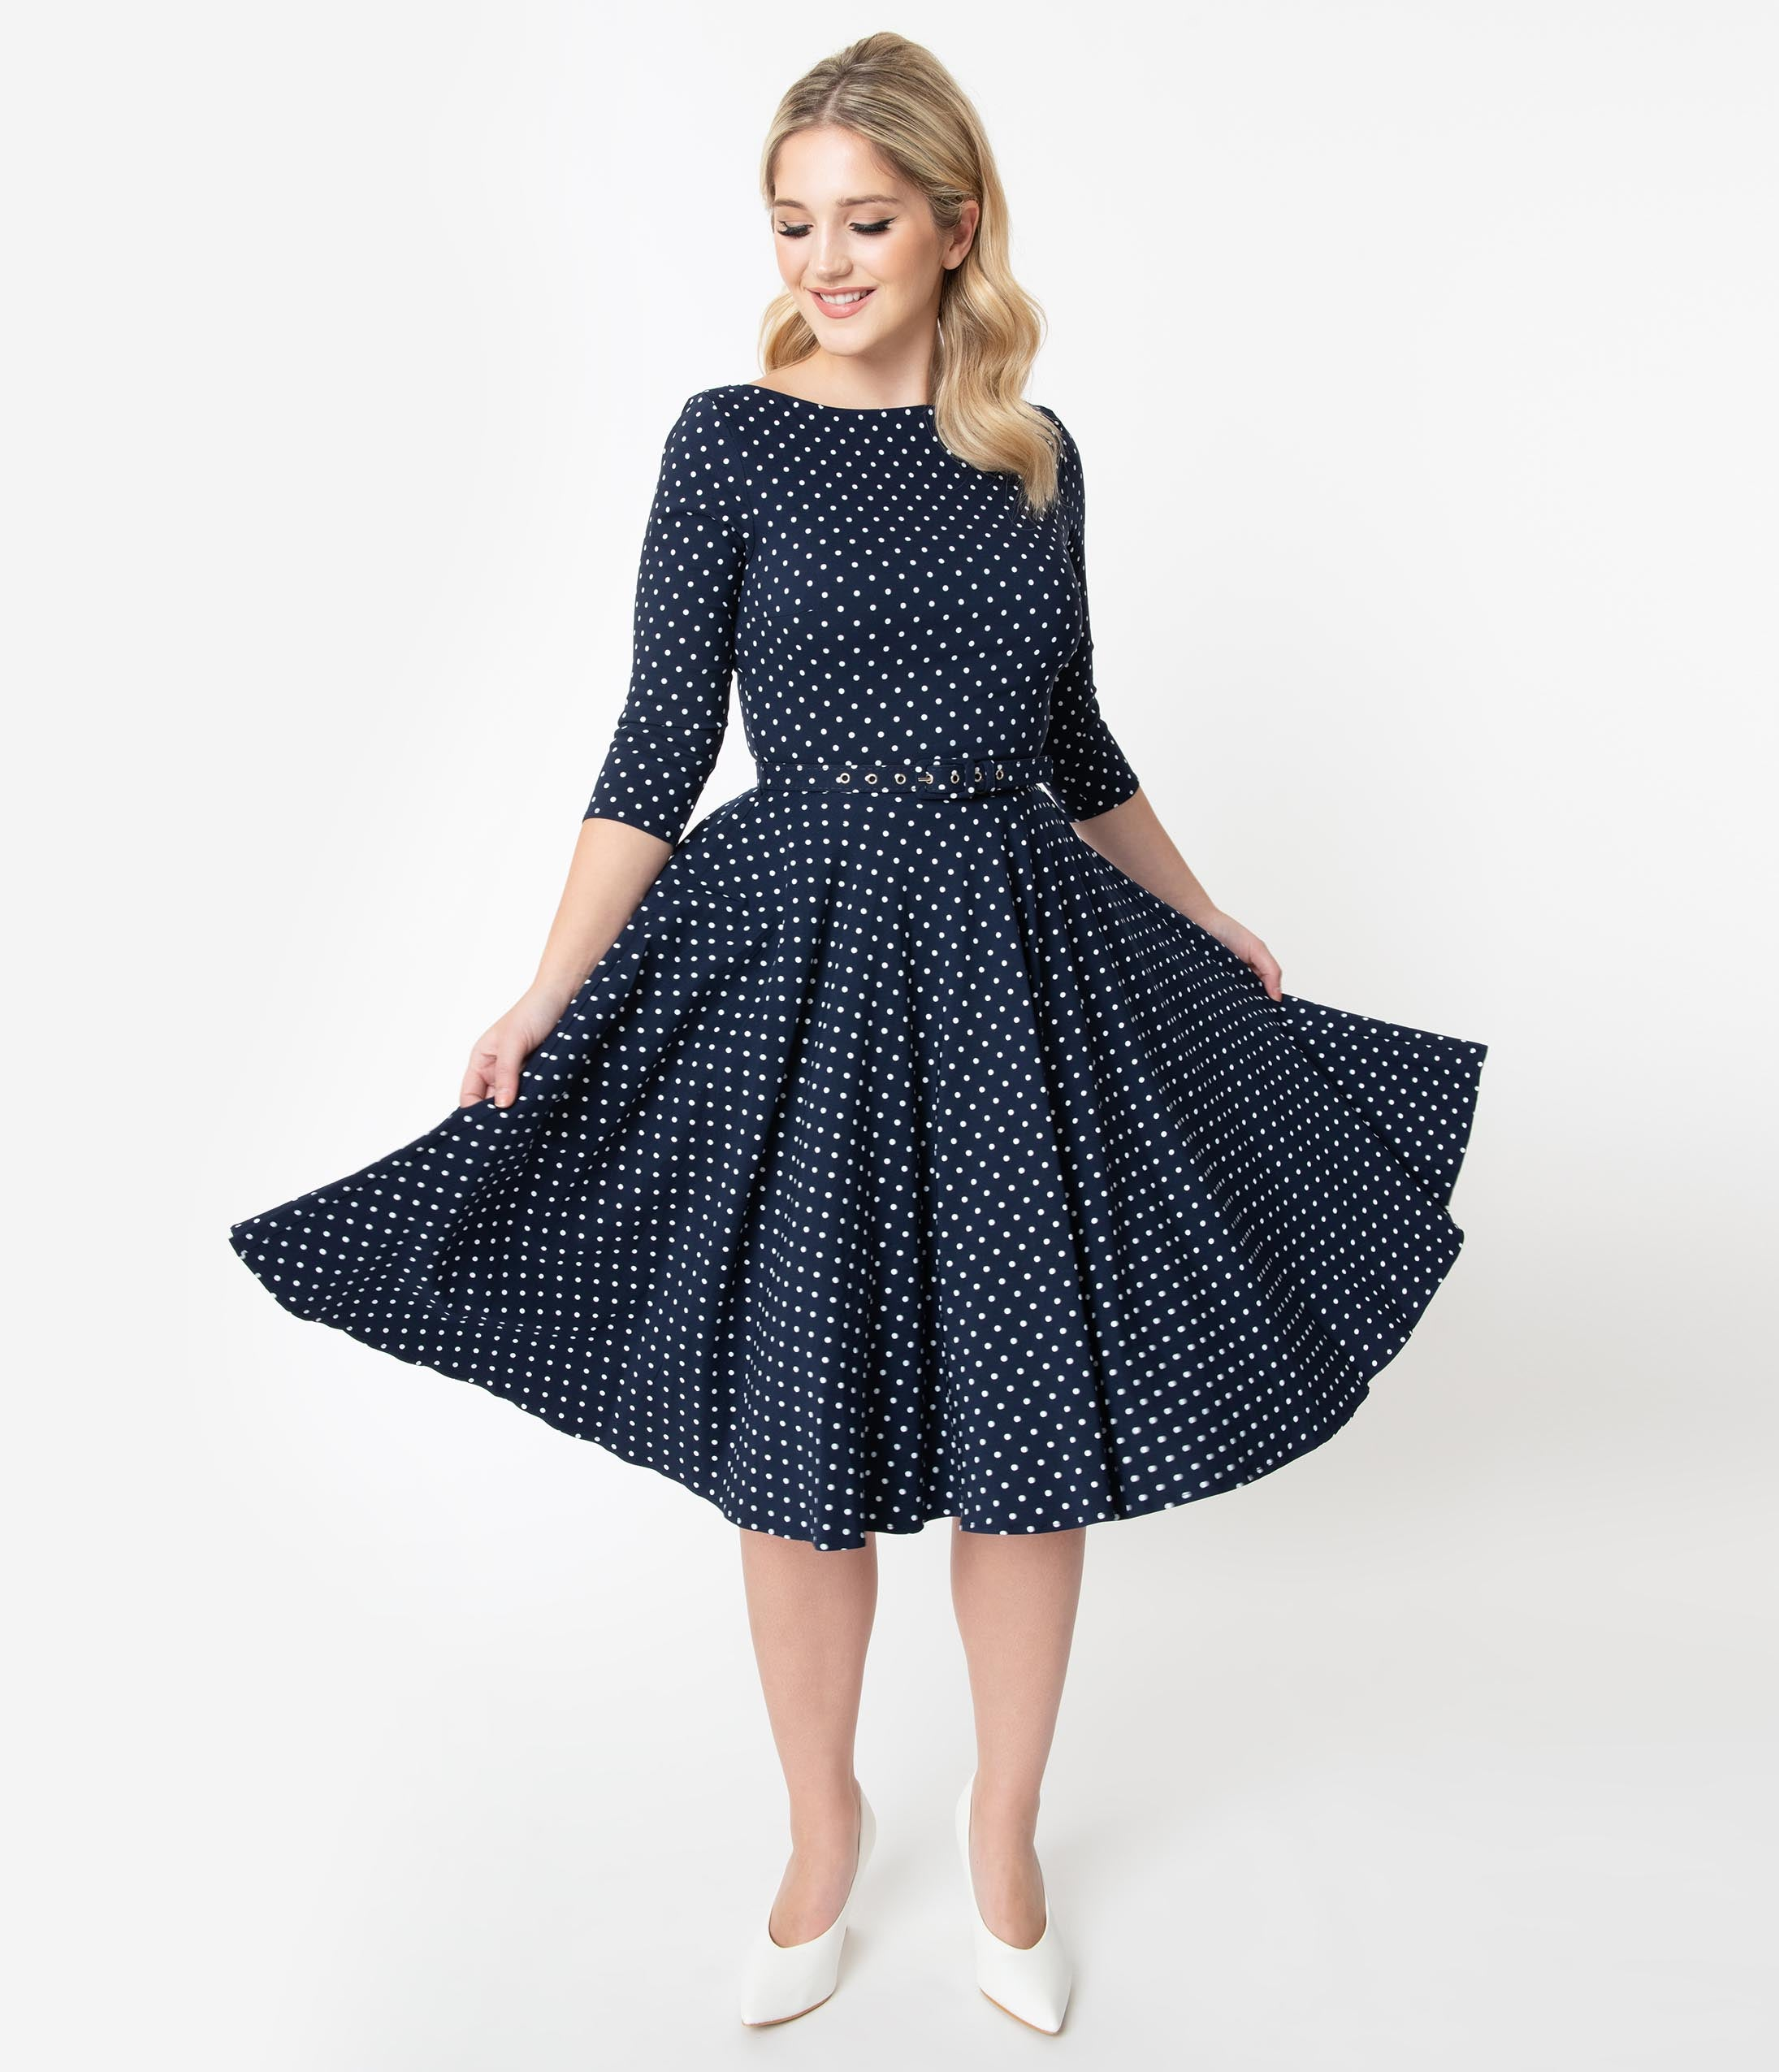 60s 70s Plus Size Dresses, Clothing, Costumes Unique Vintage 1950S Navy  White Pin Dot Sleeved Devon Swing Dress $88.00 AT vintagedancer.com